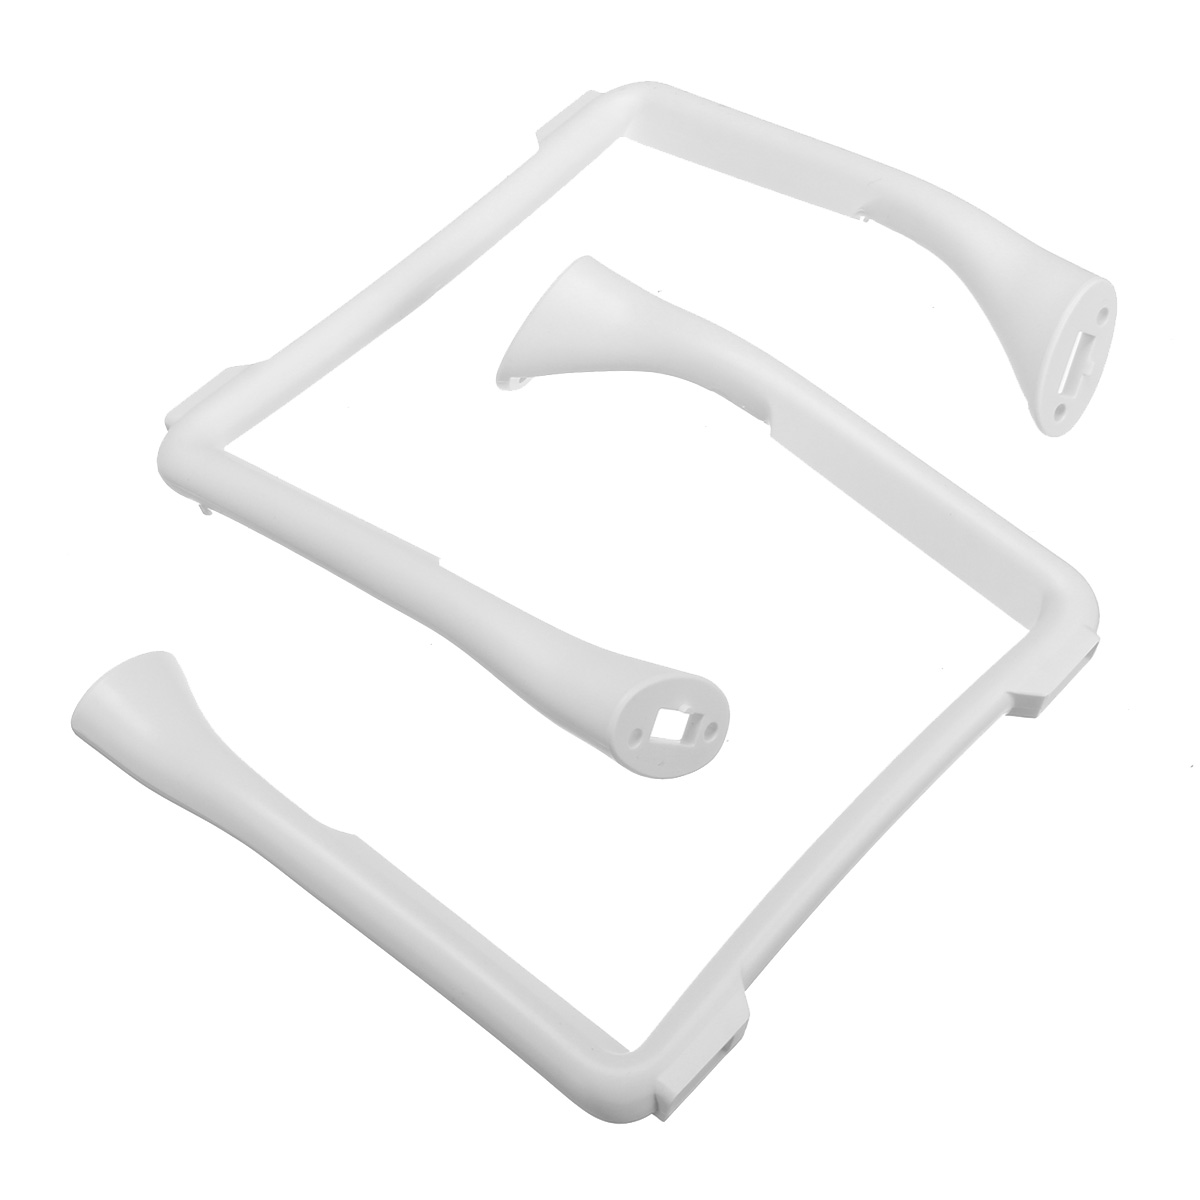 Body Shell Top Bottom Cover Landing Gear RC Quadcopter Parts For DJI Phantom 3 Pro/Advanced Drone